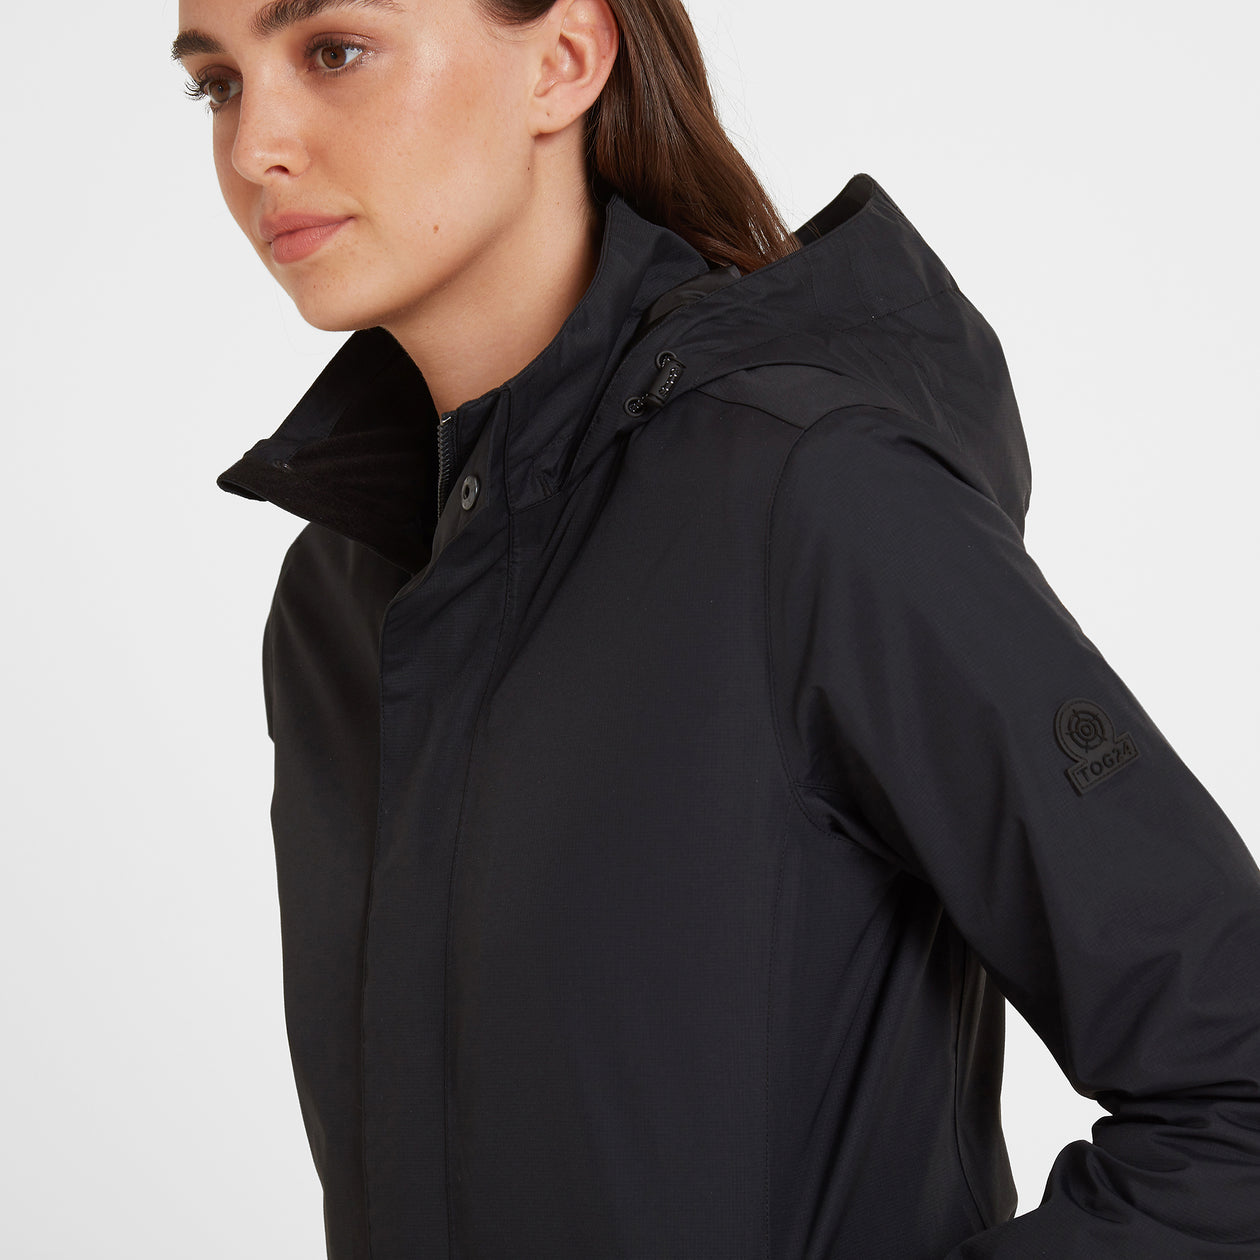 Mawson Womens Waterproof Jacket - Black image 4